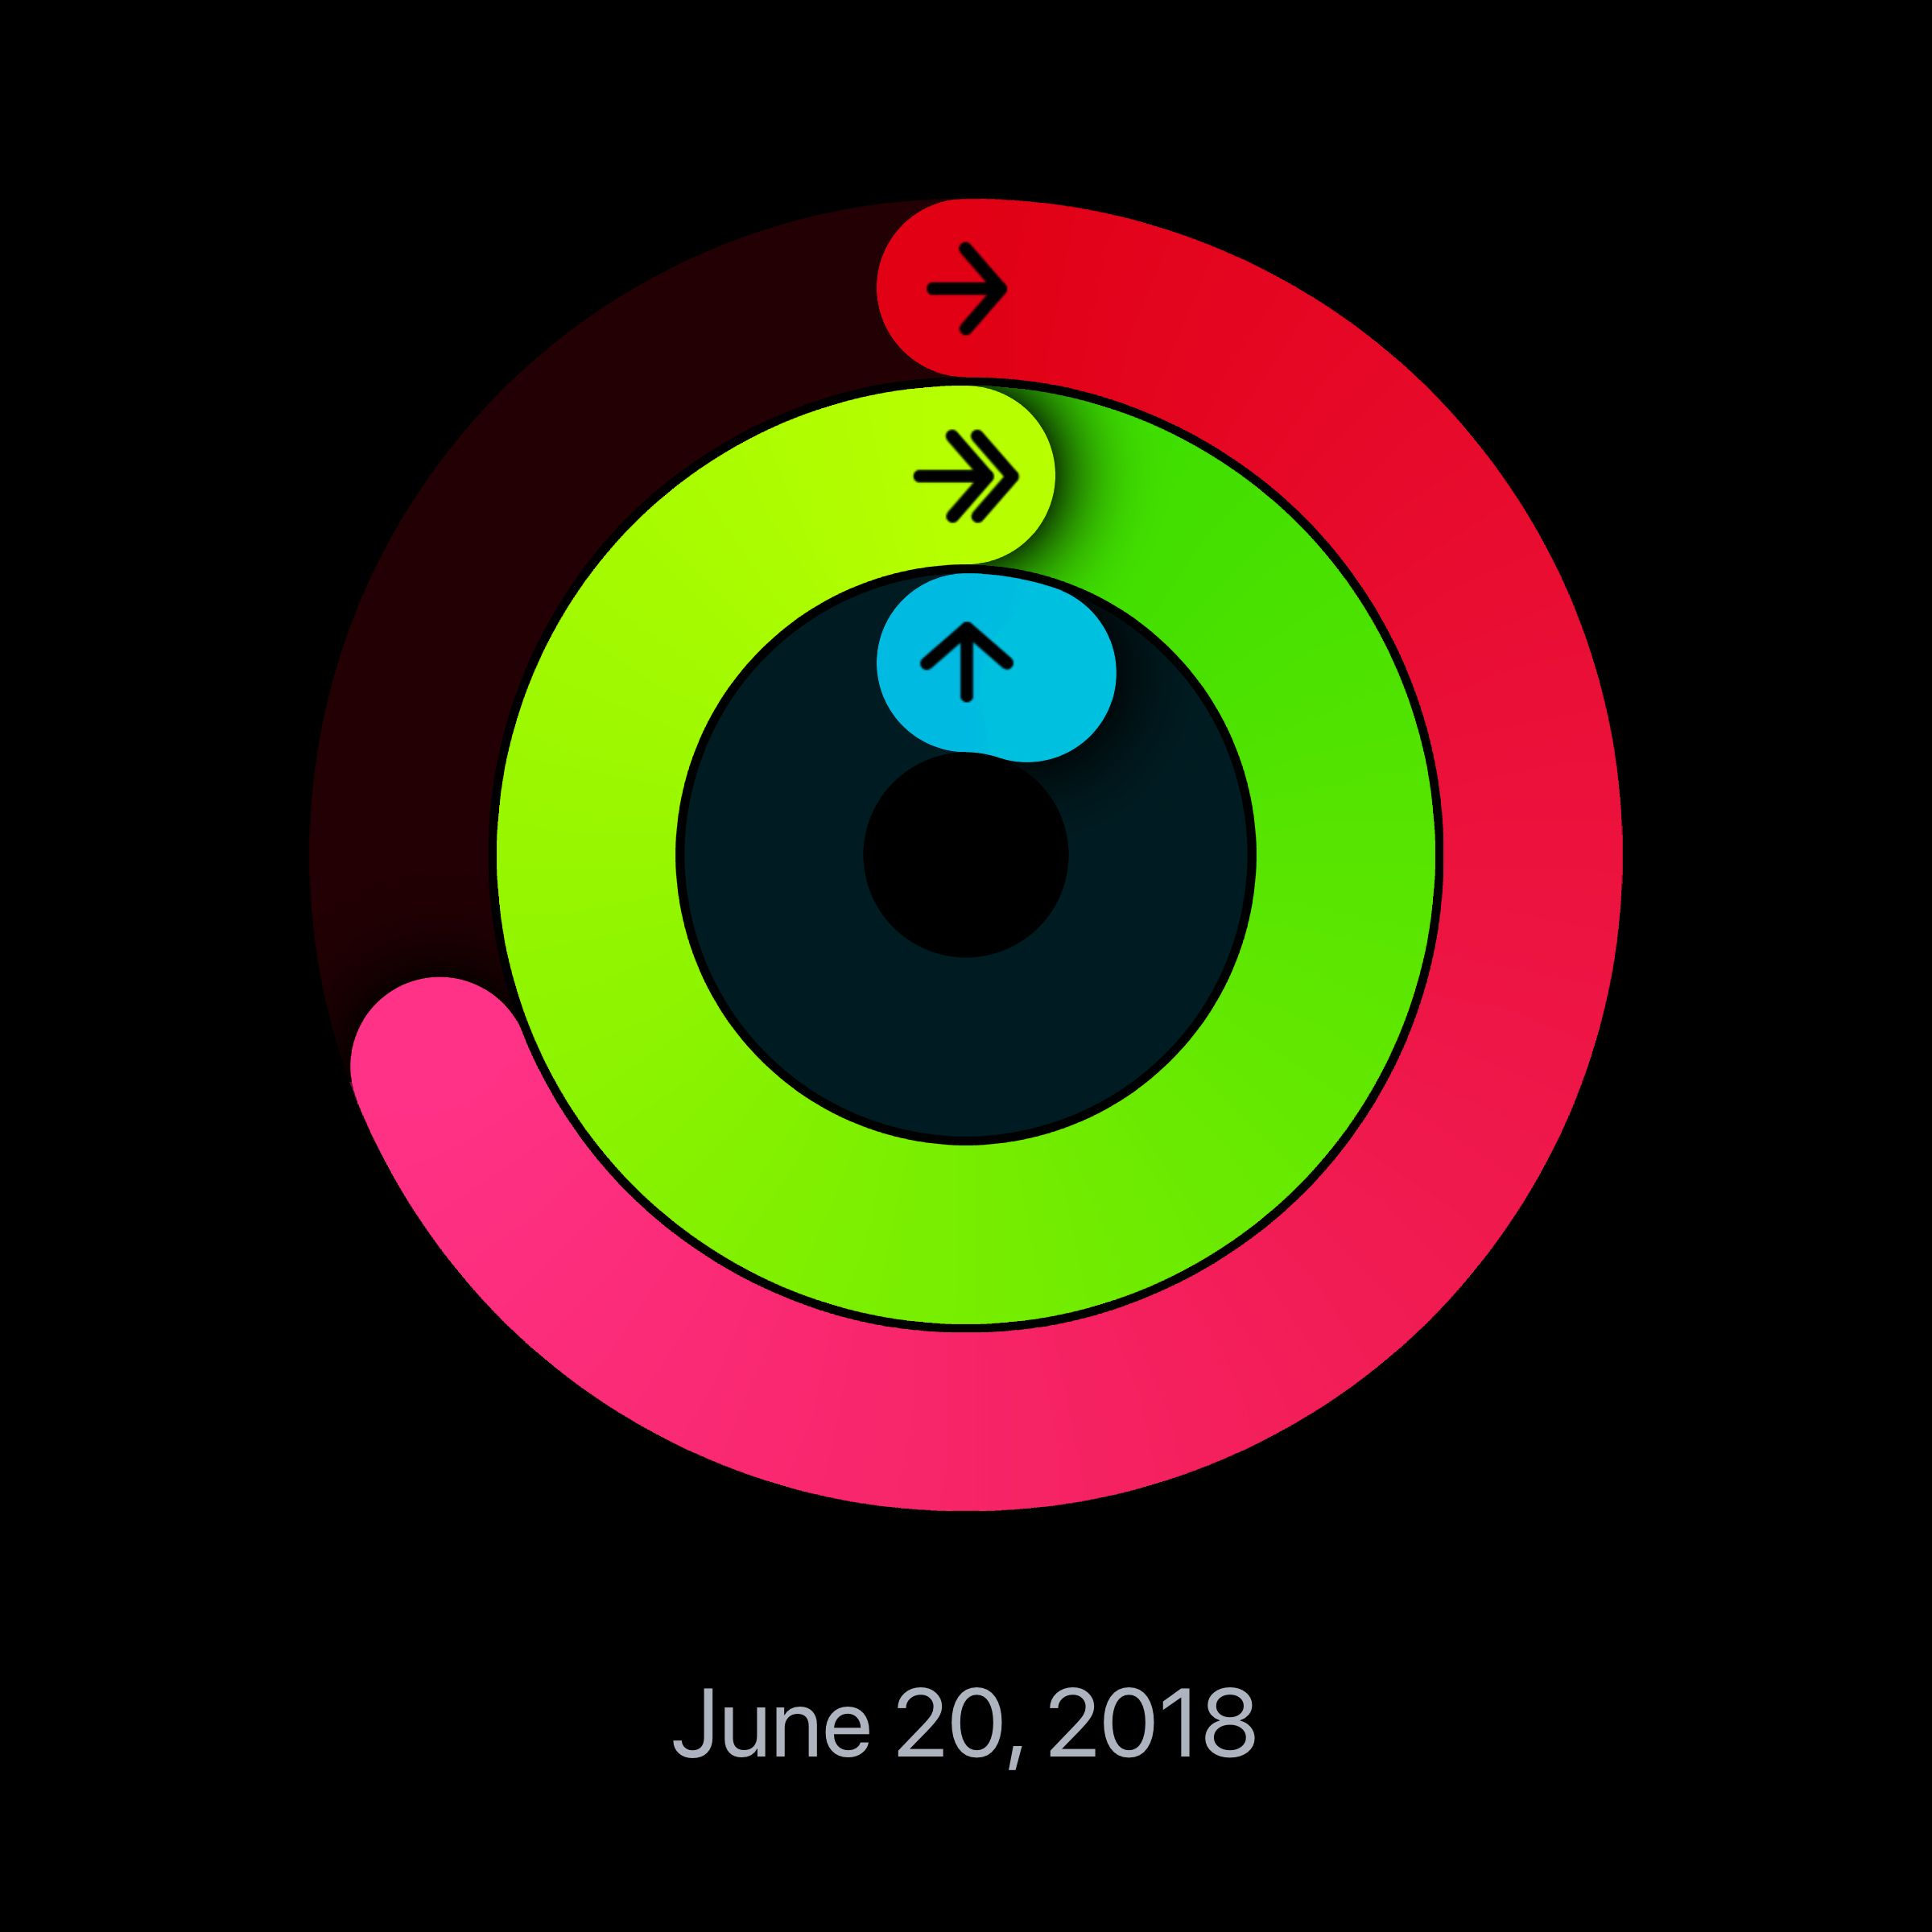 Check out my progress today with the Activity app on my